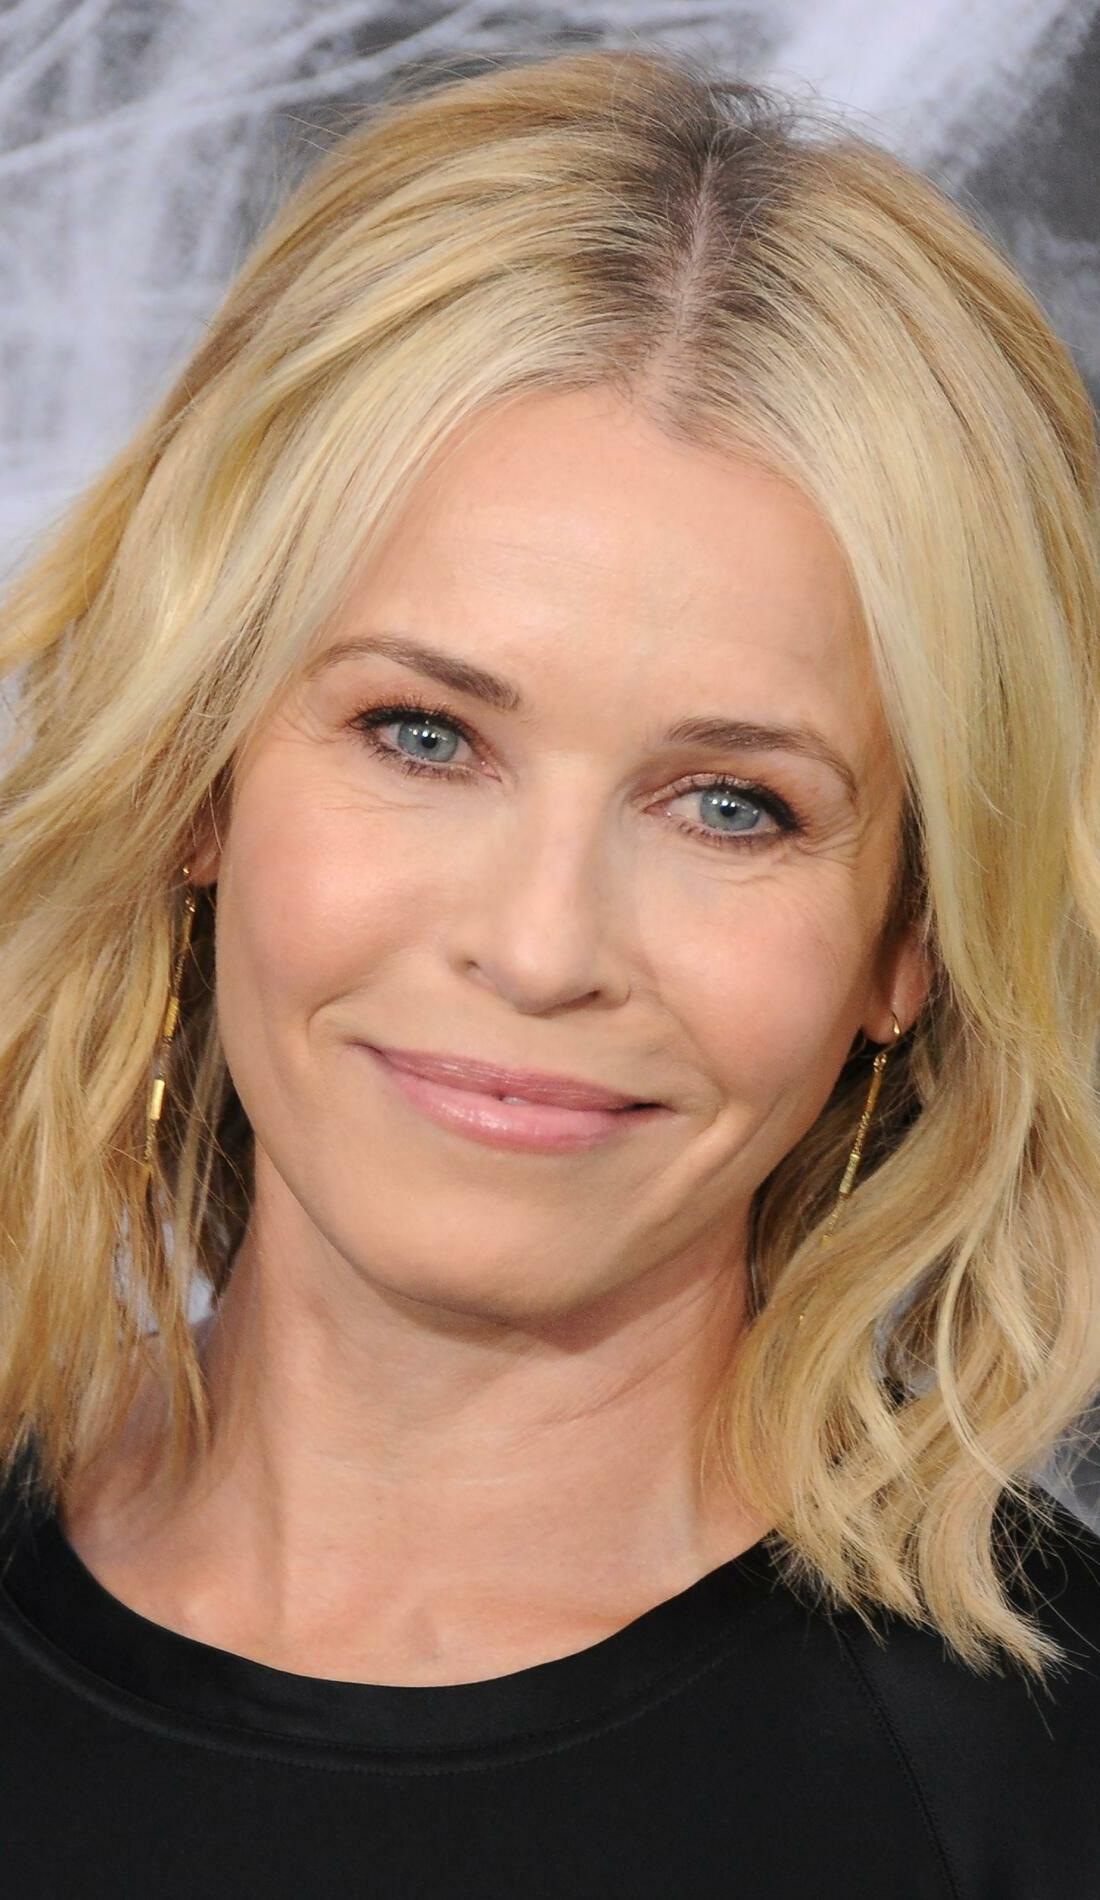 A Chelsea Handler live event